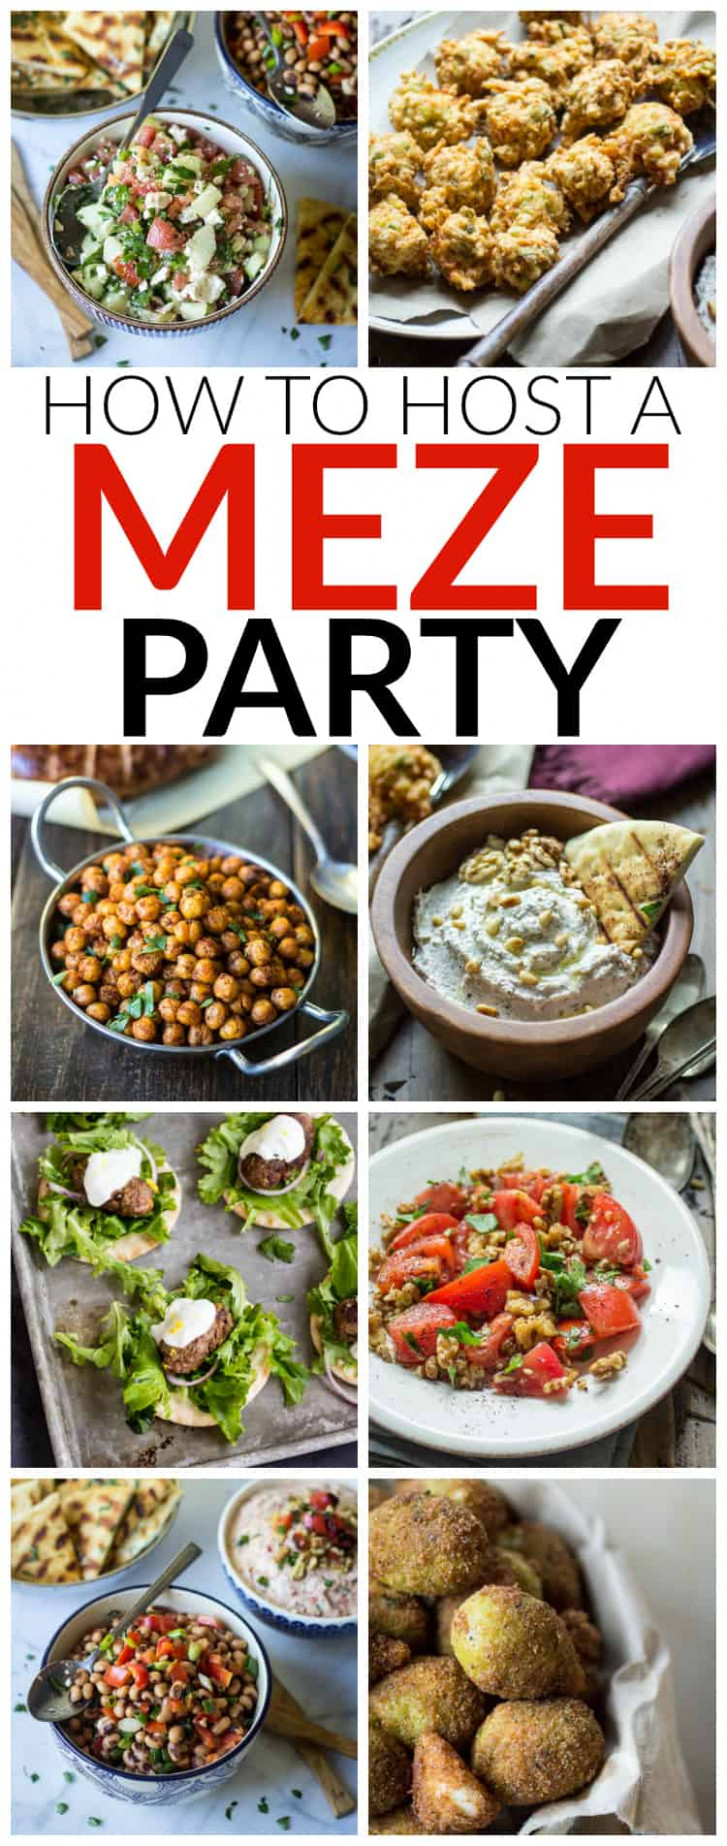 How To Host A Turkish Meze Party - The Wanderlust Kitchen - Turkish Recipes Dinner